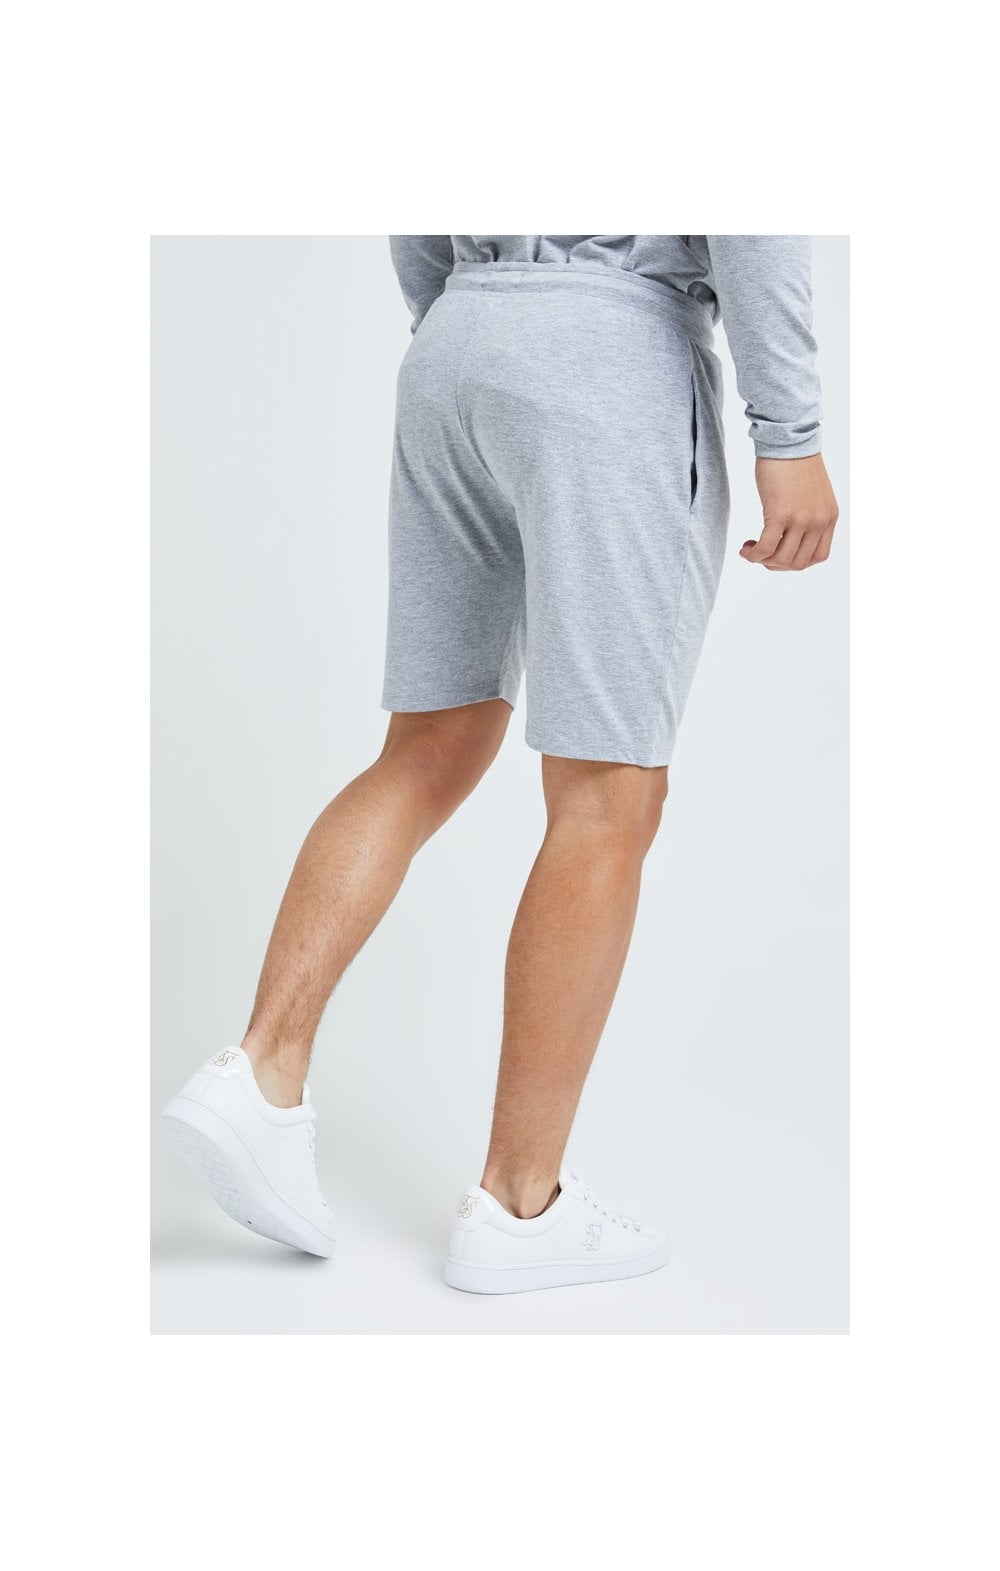 Load image into Gallery viewer, Illusive London Core Jersey Shorts - Grey Marl (4)